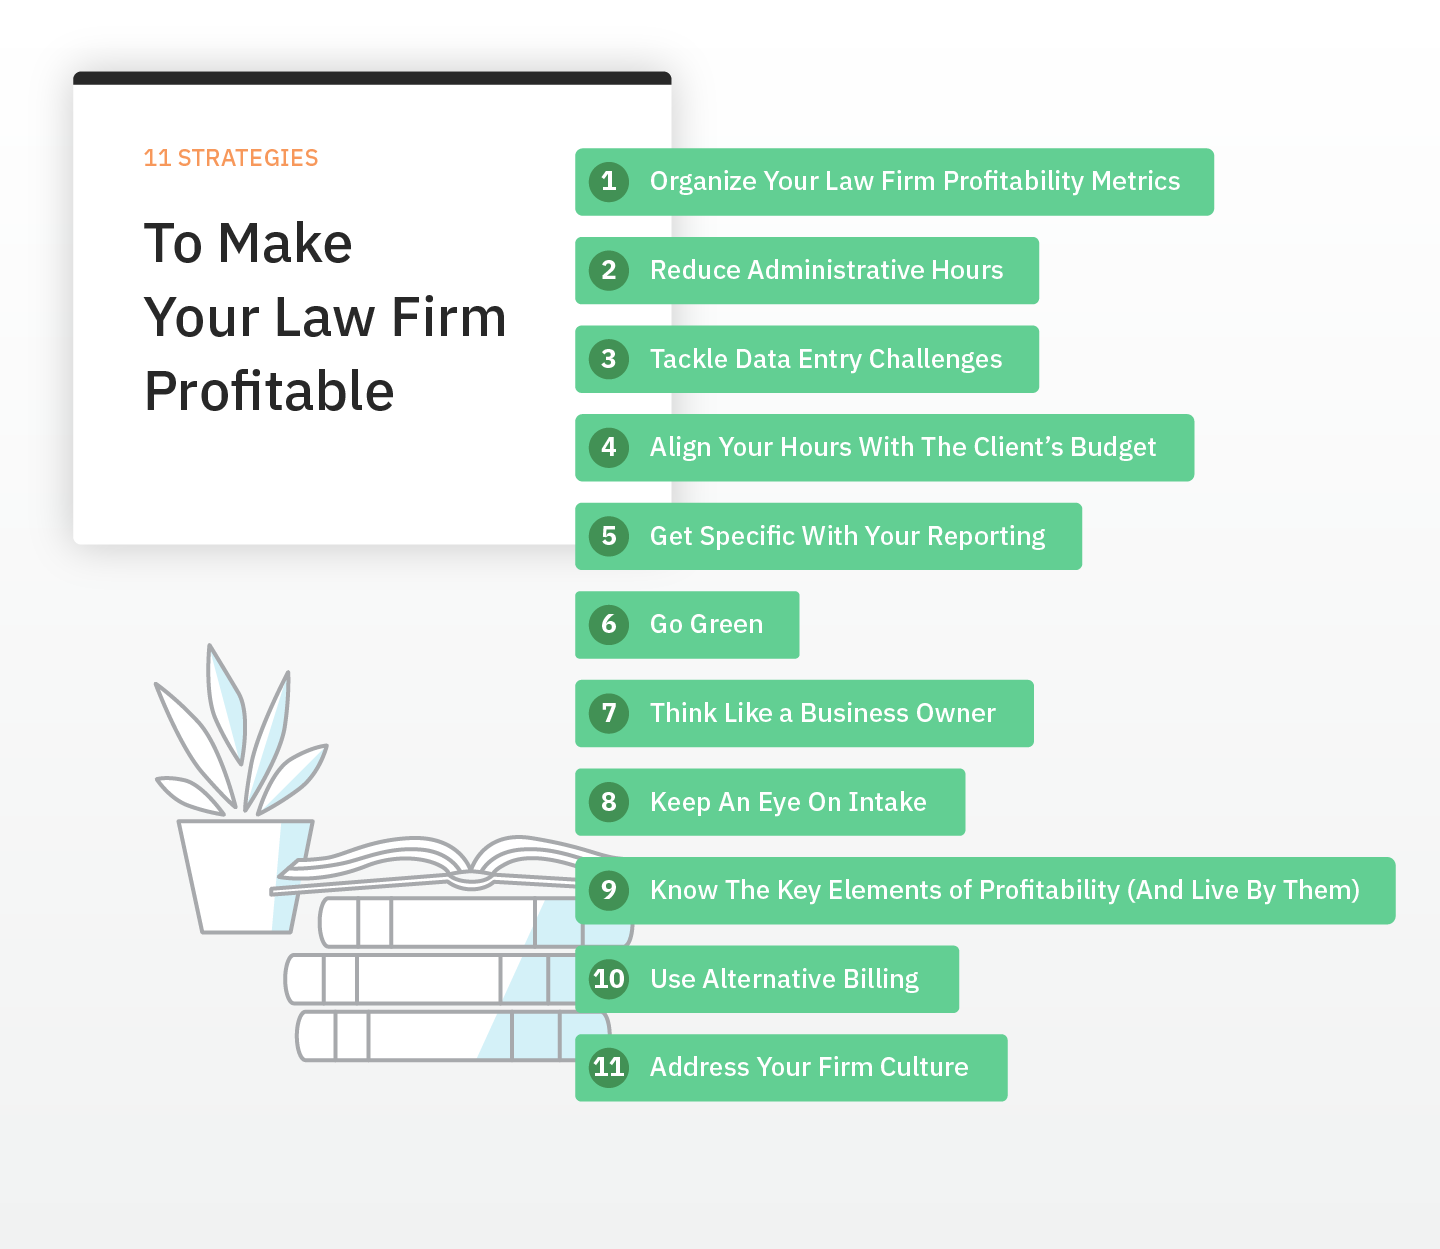 Simple Ways To Make Your Law Firm Profitable